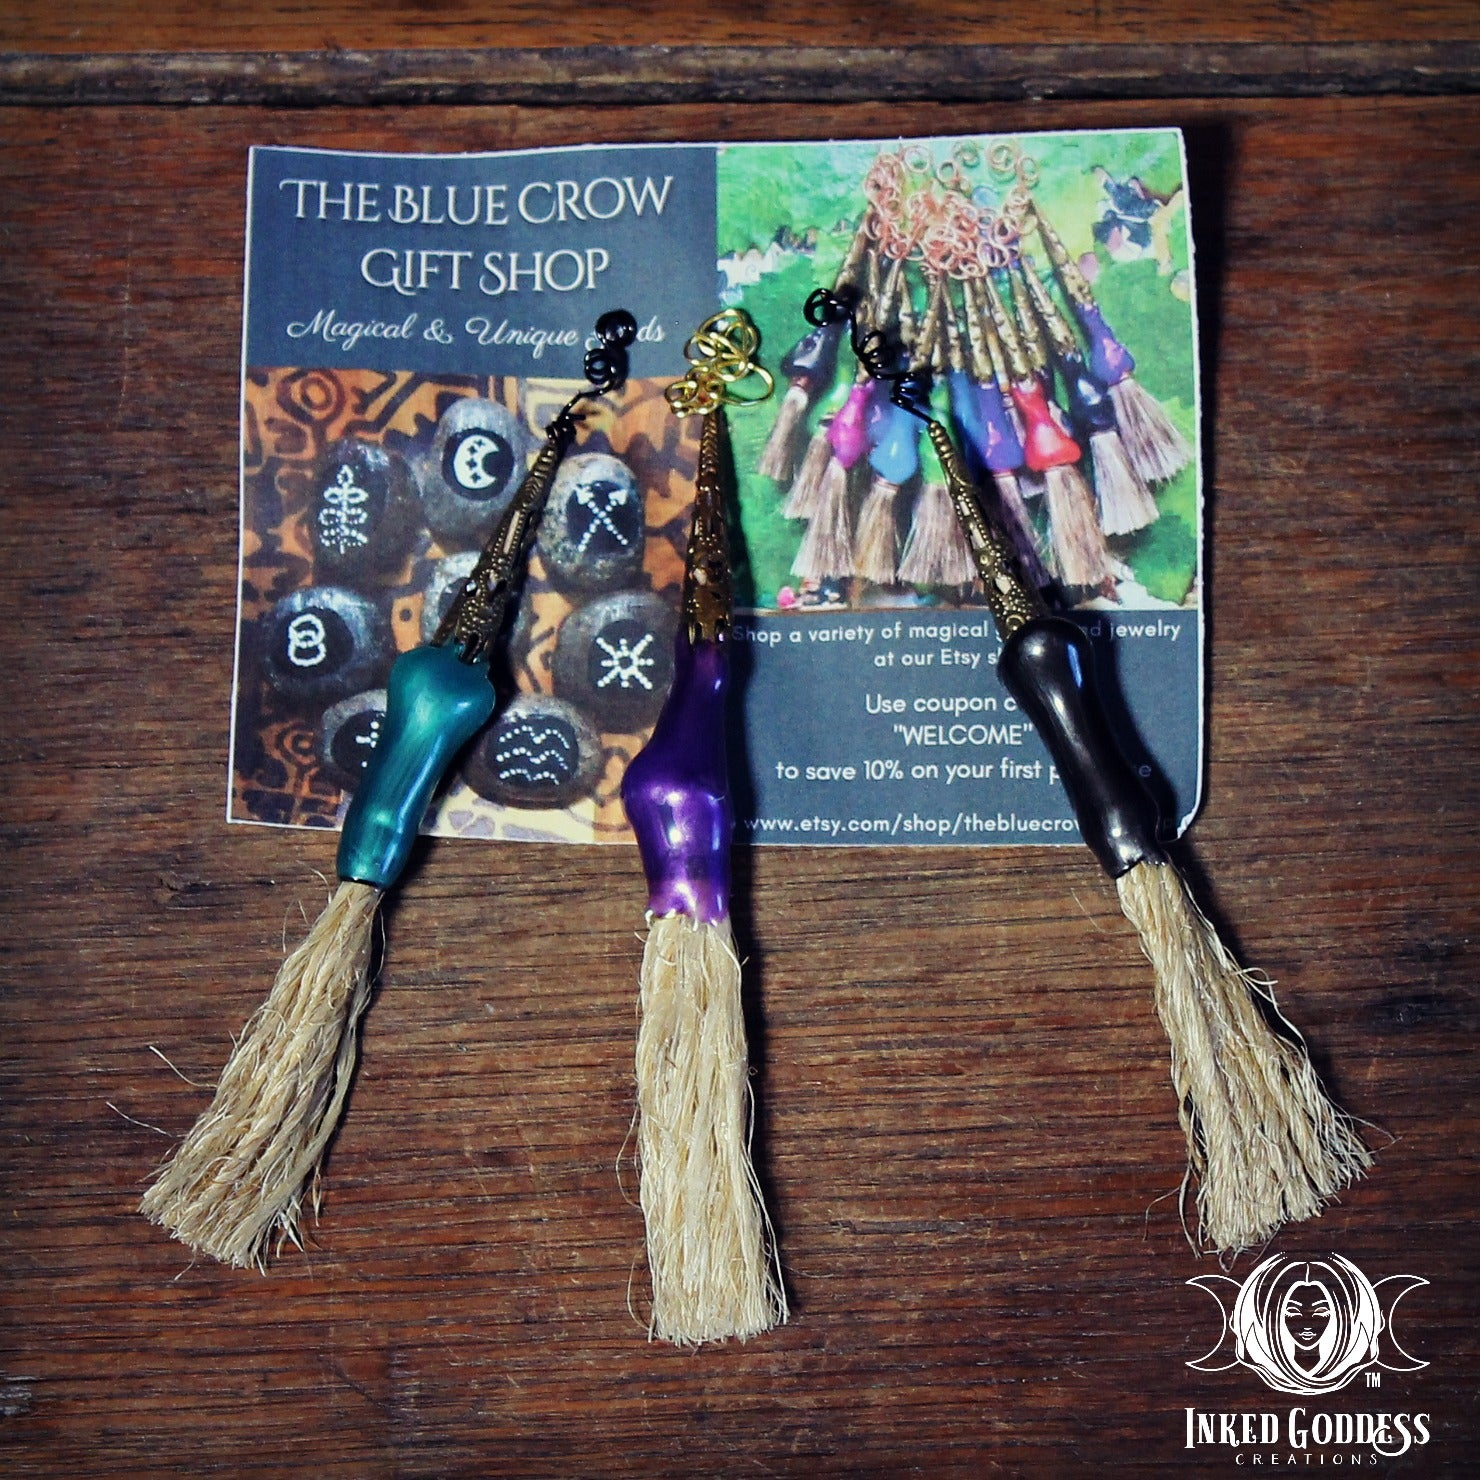 Using a besom or broom to sweep away negativity an Cleanse a